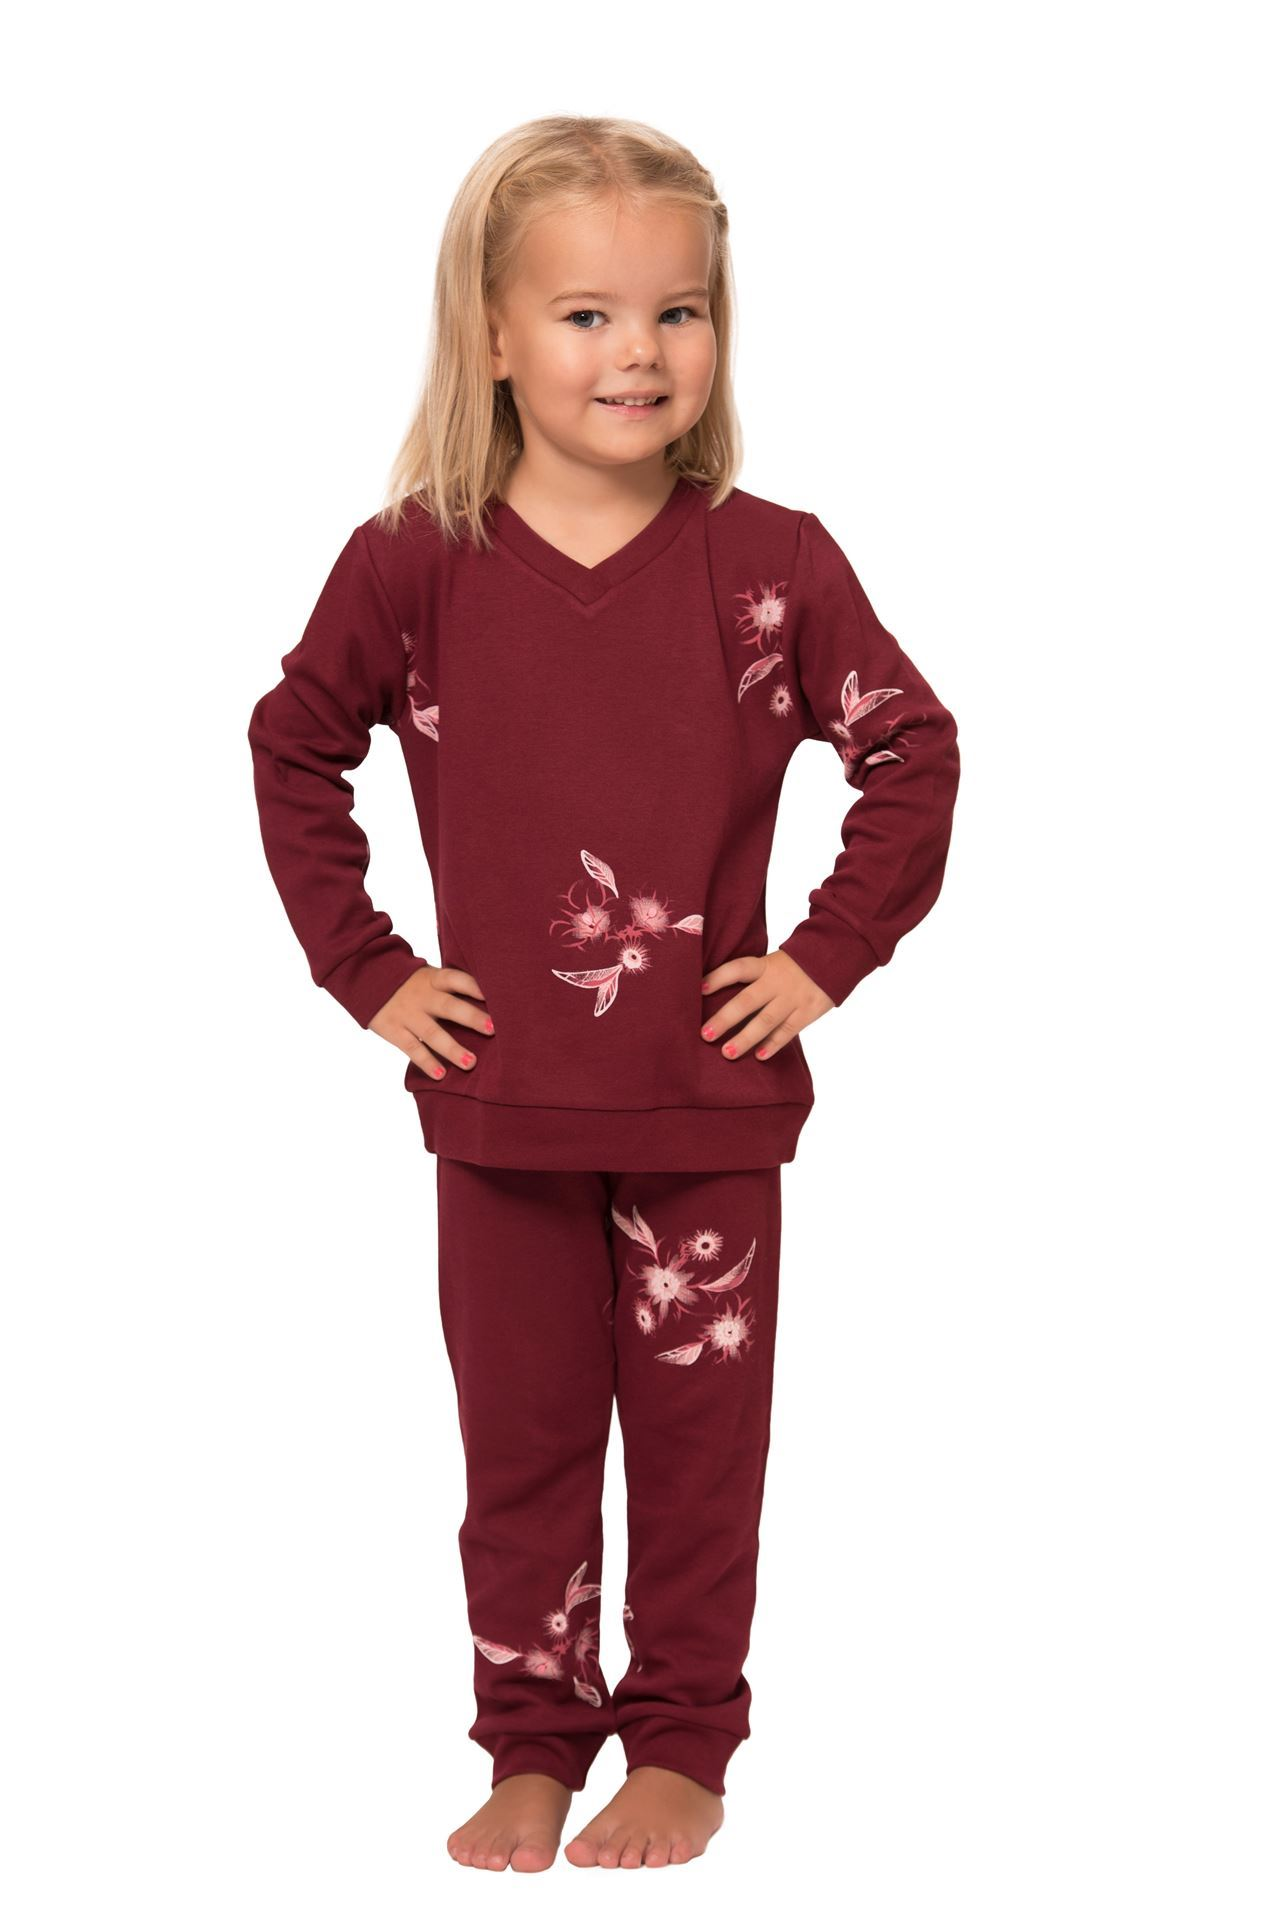 Picture of Cotton pajamas for girls with floral print